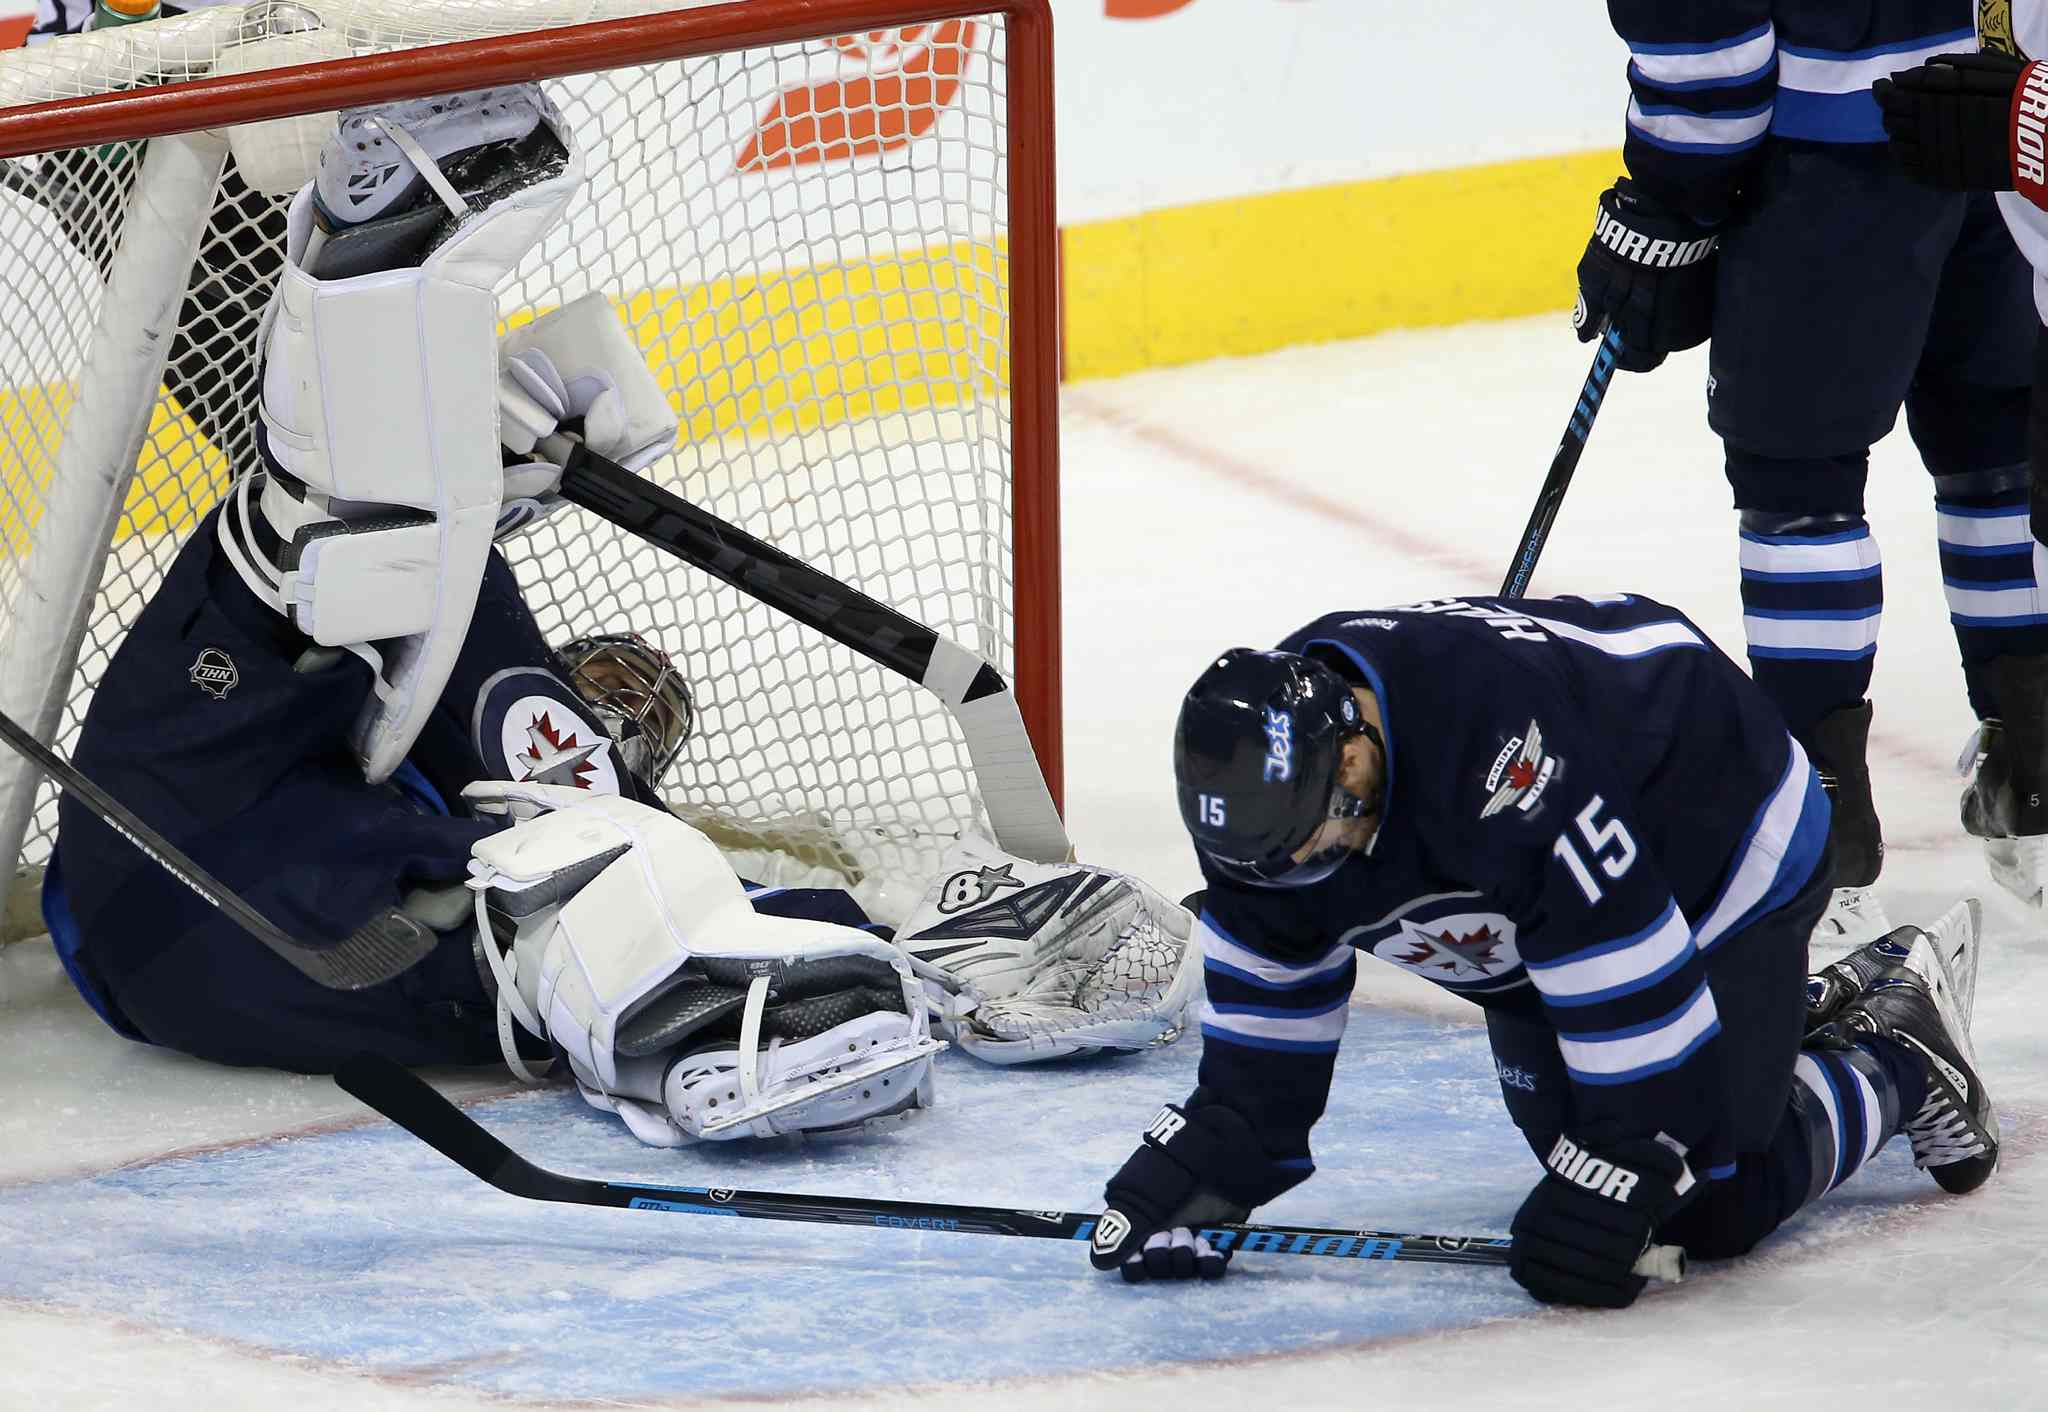 Winnipeg Jets' goaltender Ondrej Pavelec (31) lies in the net after a puck took a strange bounce off of Matt Halischuk (15). The goal was credited to Ottawa Senators' Milan Michalek (9), not shown, during first period NHL hockey action at MTS Centre in Winnipeg Saturday.